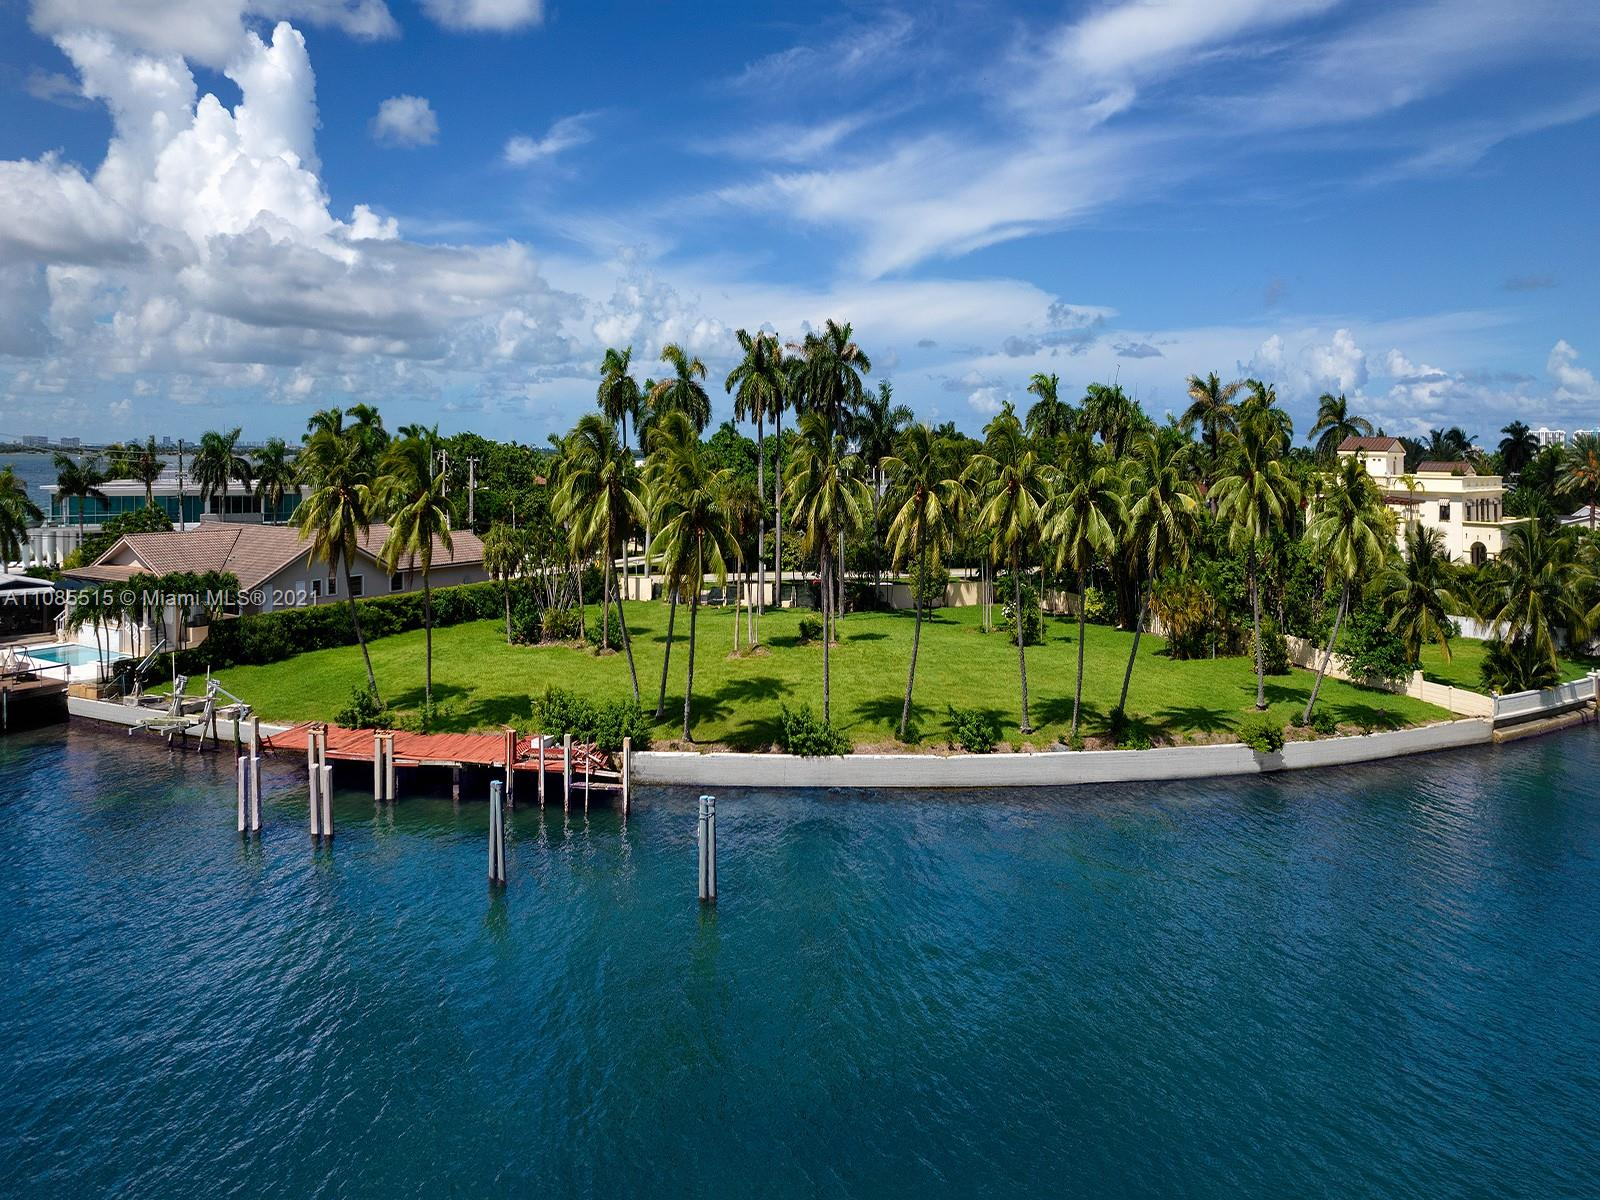 Build the home of your dreams on this trophy waterfront property, a double lot with approximately 27,000 sq ft and 208 ft of waterfrontage on the southwest tip of San Marco Island, along the magnificent Venetian Causeway. The property features panoramic open bay views of the Miami skyline as well as a picturesque line of palm trees along the water, framing spectacular sunsets. The extraordinary location, at the heart of the romantic Venetian Islands, is within walking distance to Sunset Harbour, Miami Beach's most interesting urban neighborhood, as well as minutes away from the Miami Design District and Miami International Airport.